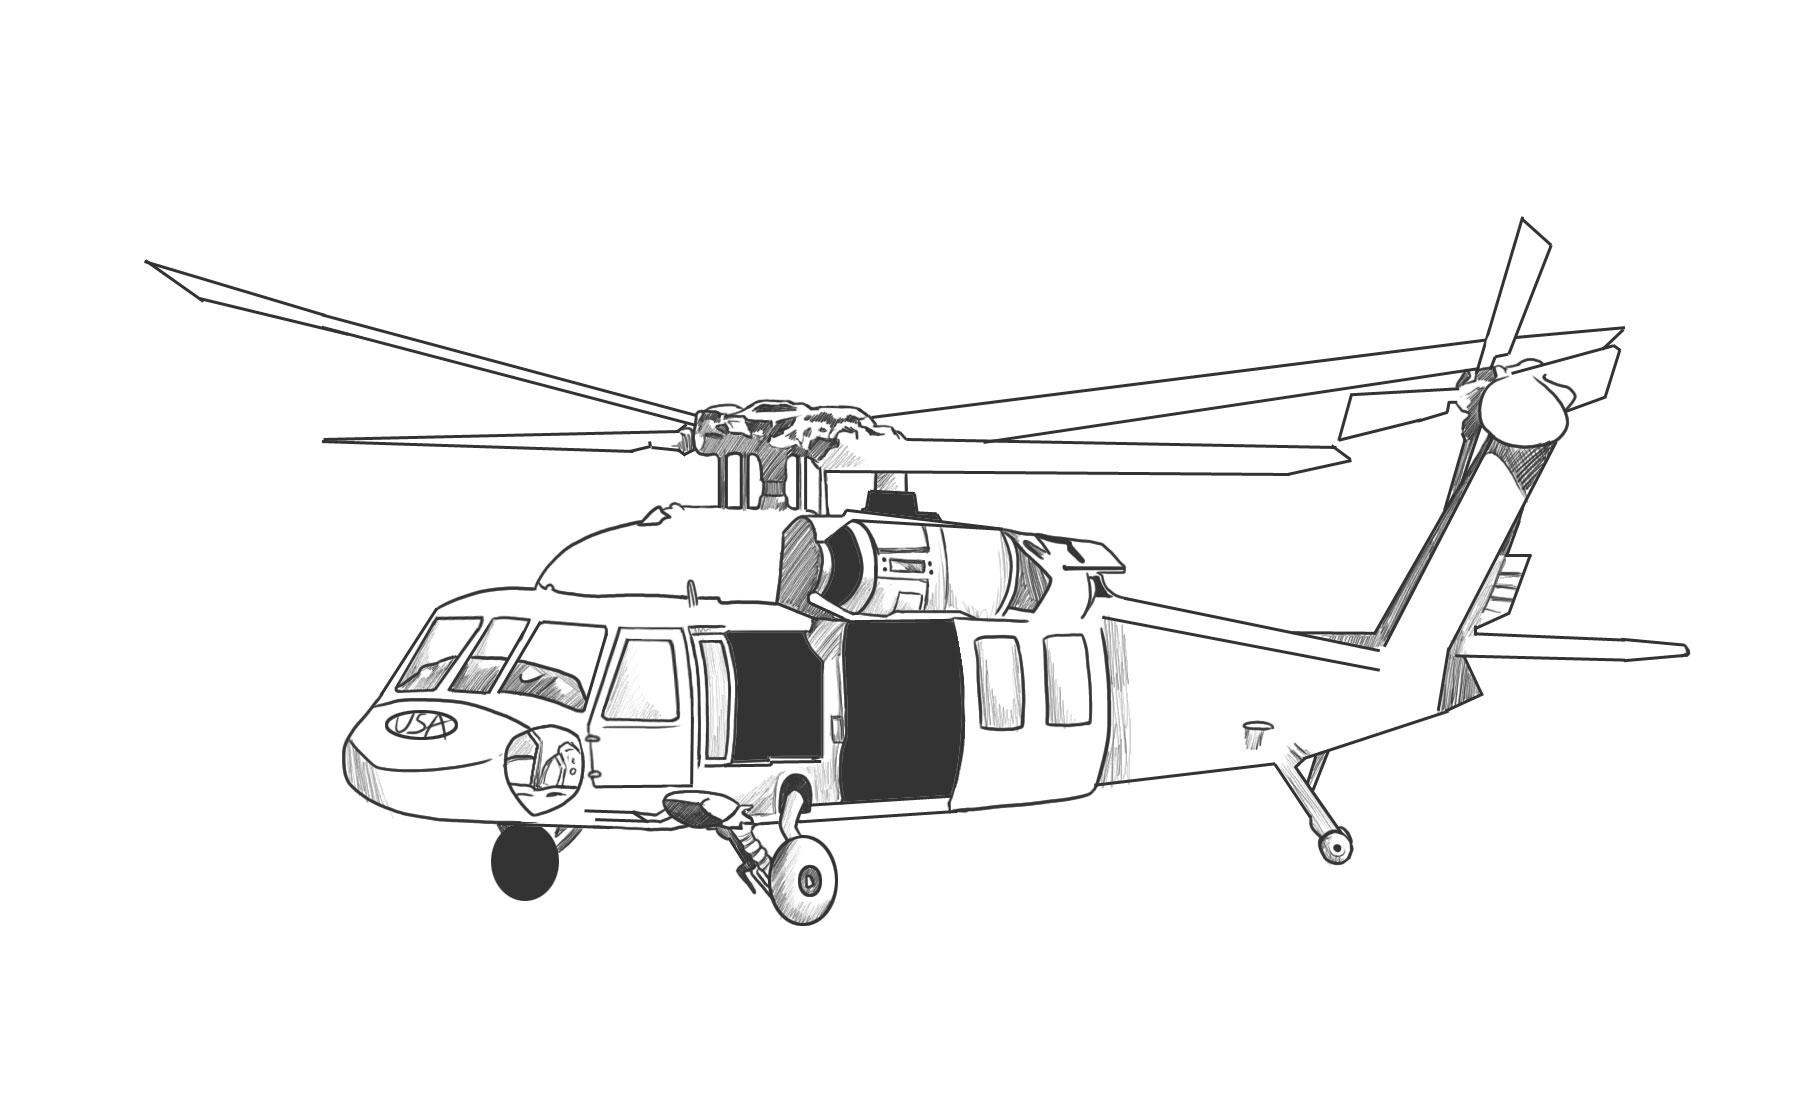 helicopter printable 8 free helicopter coloring pages for kids save print helicopter printable